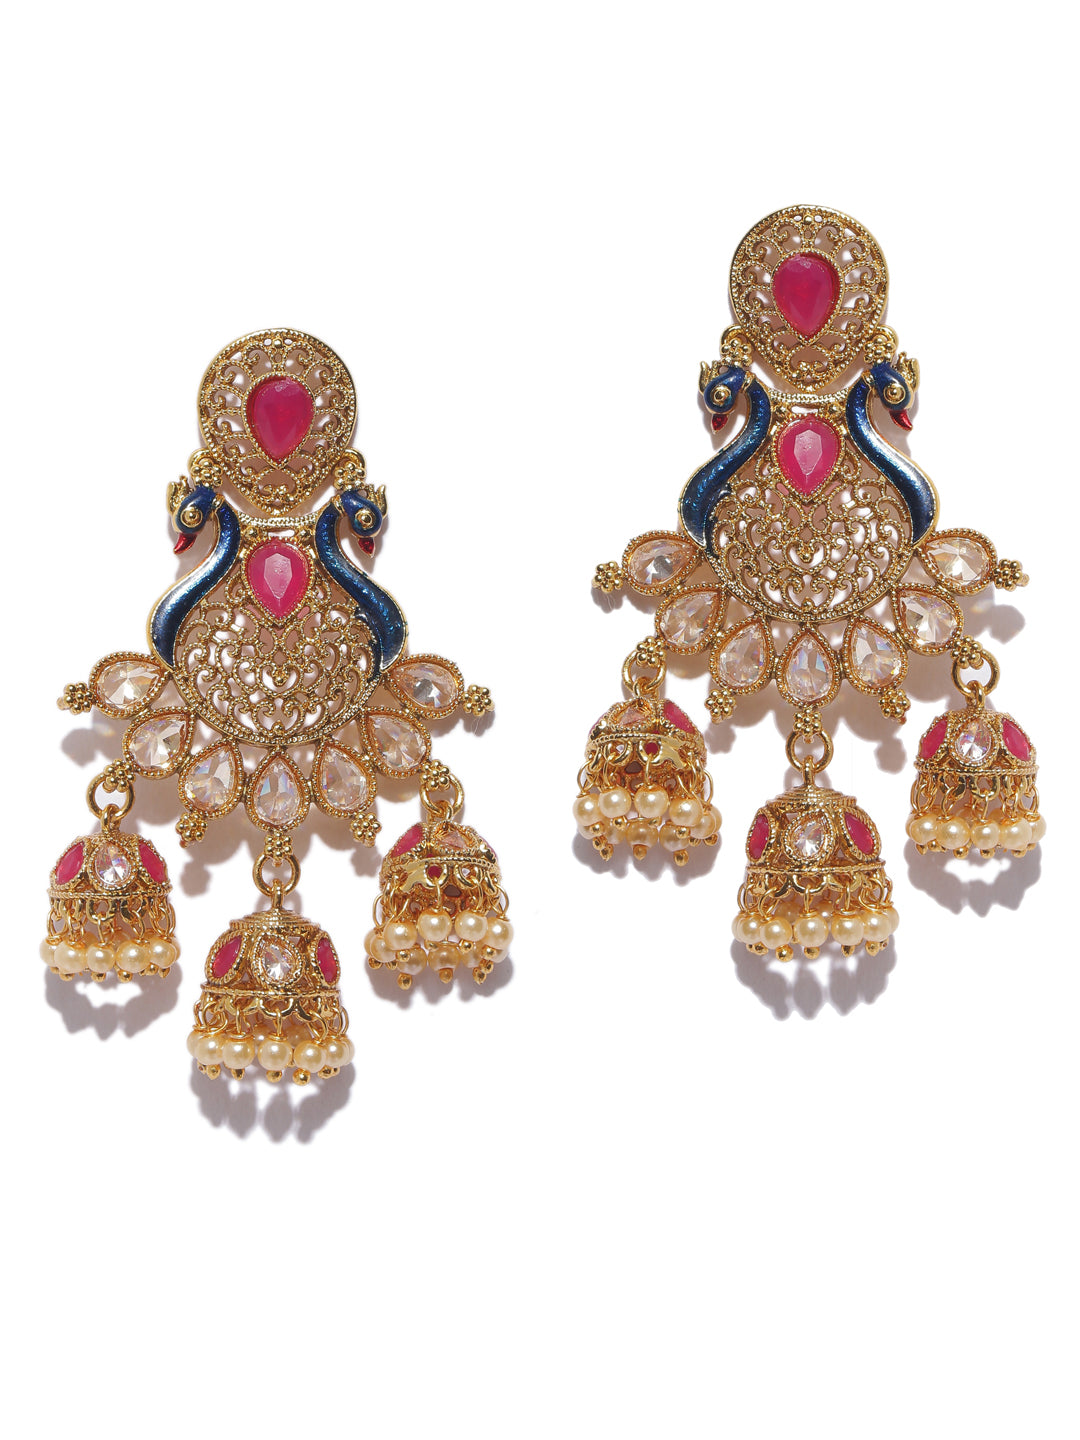 High quality Contemporary Peacock Design Dangler Earring-ARADHYAA JEWEL ARTS1-Earring